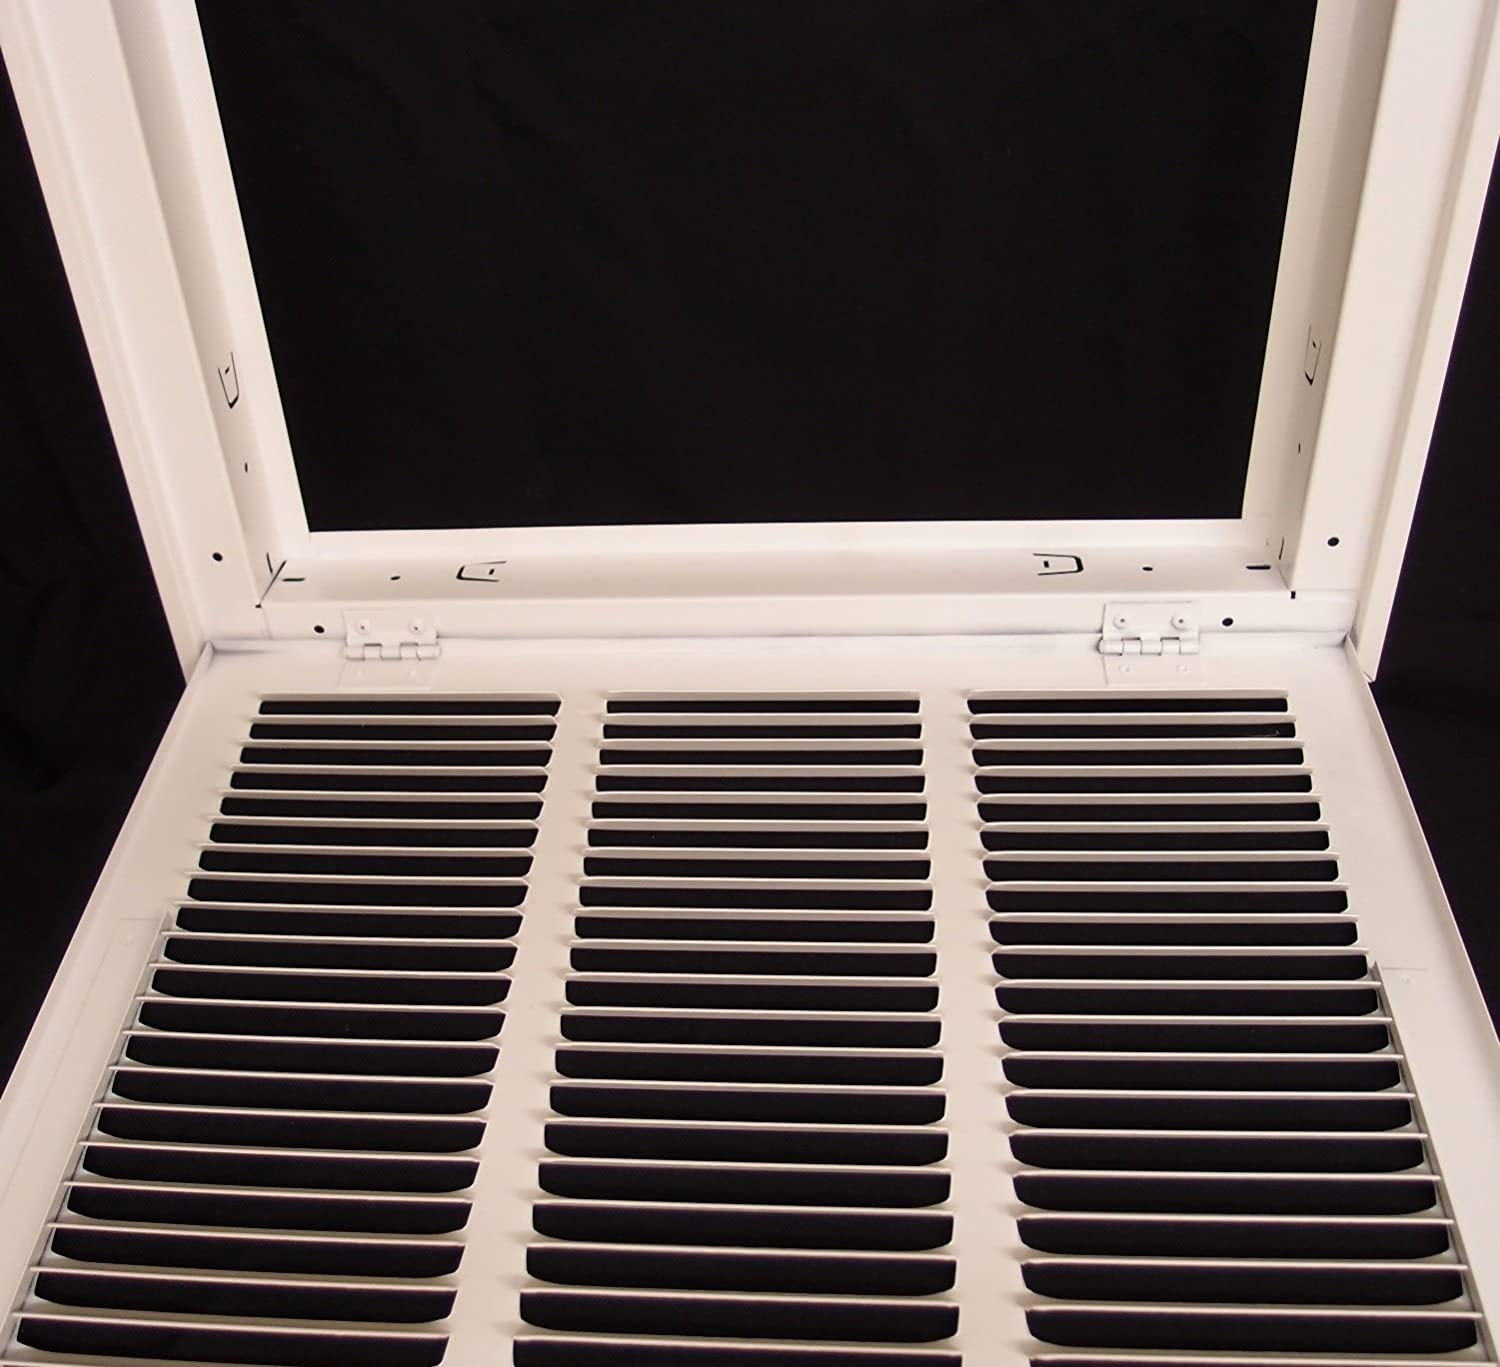 24 X 6 Steel Return Air Filter Grille for 1 Filter ceiling Recommended HVAC DUCT COVER Fixed Hinged HVAC Premium Flat Stamped Face Outer Dimensions: 26.75w X 8.75h White